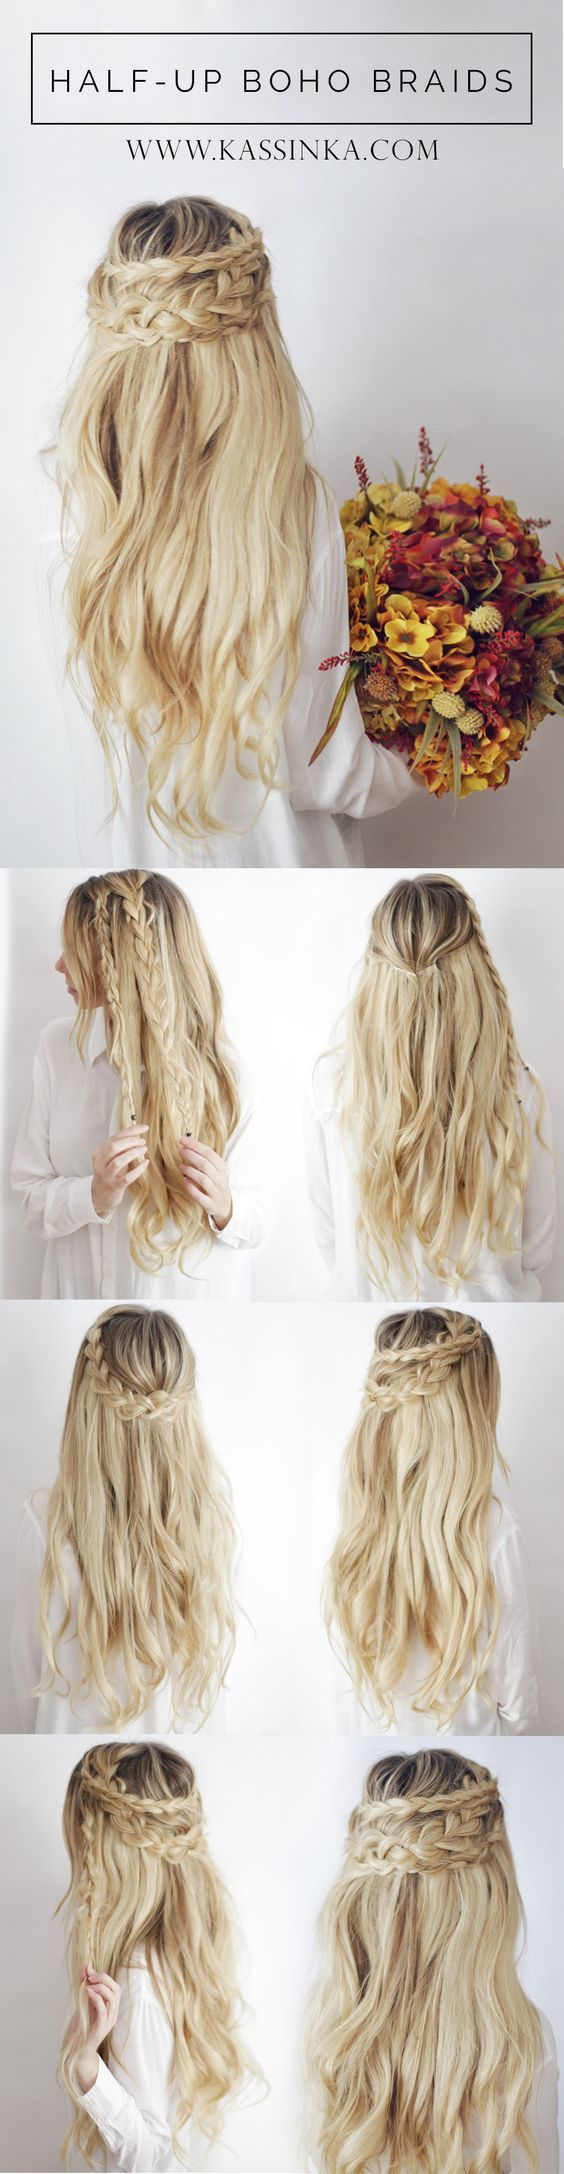 best easy hairdos images on pinterest